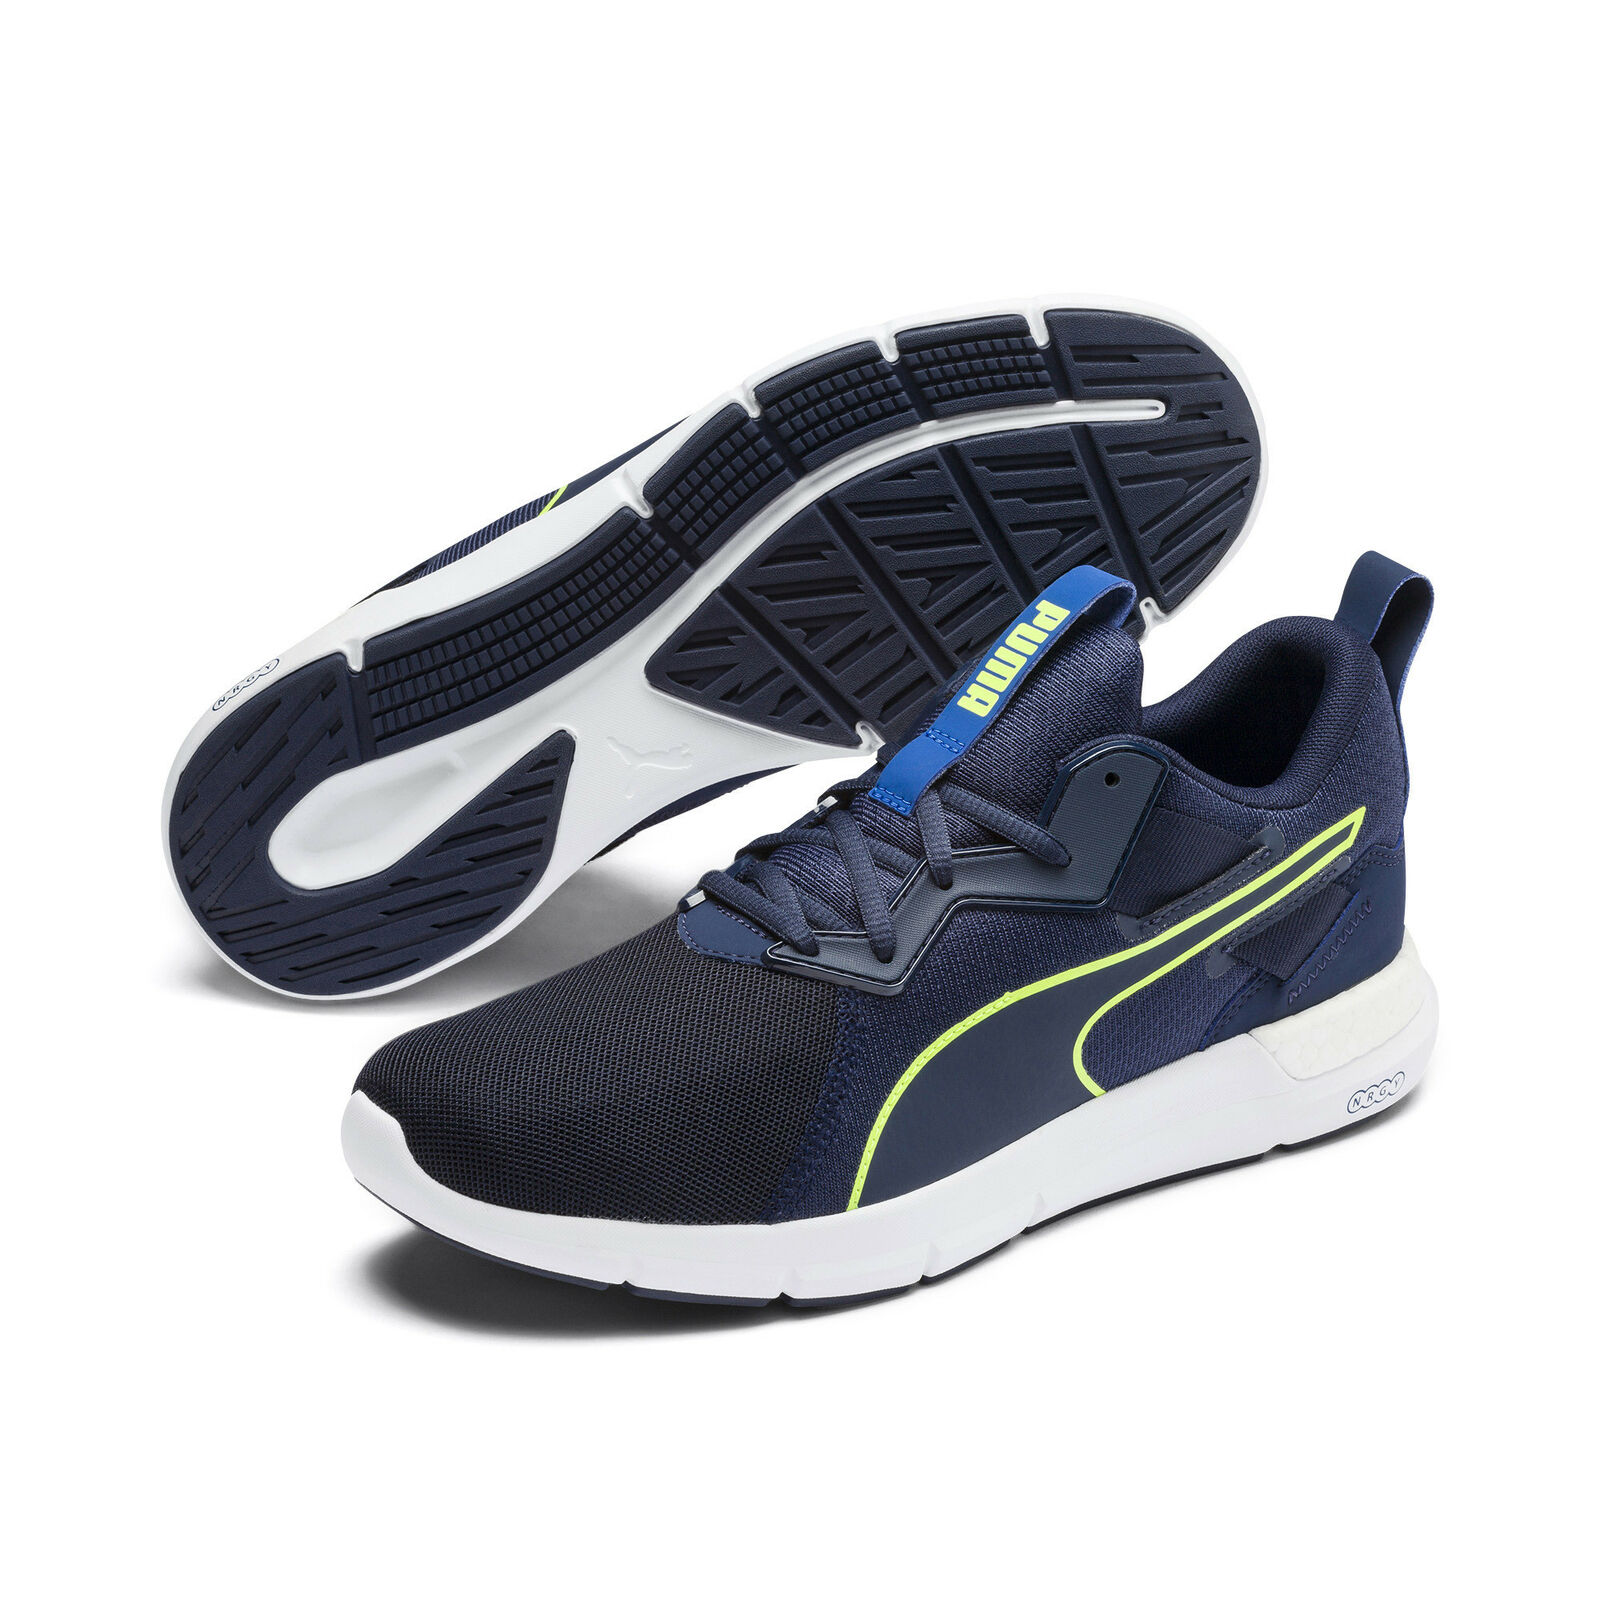 PUMA NRGY Dynamo Futuro Men's Running Shoes Men Shoe Running